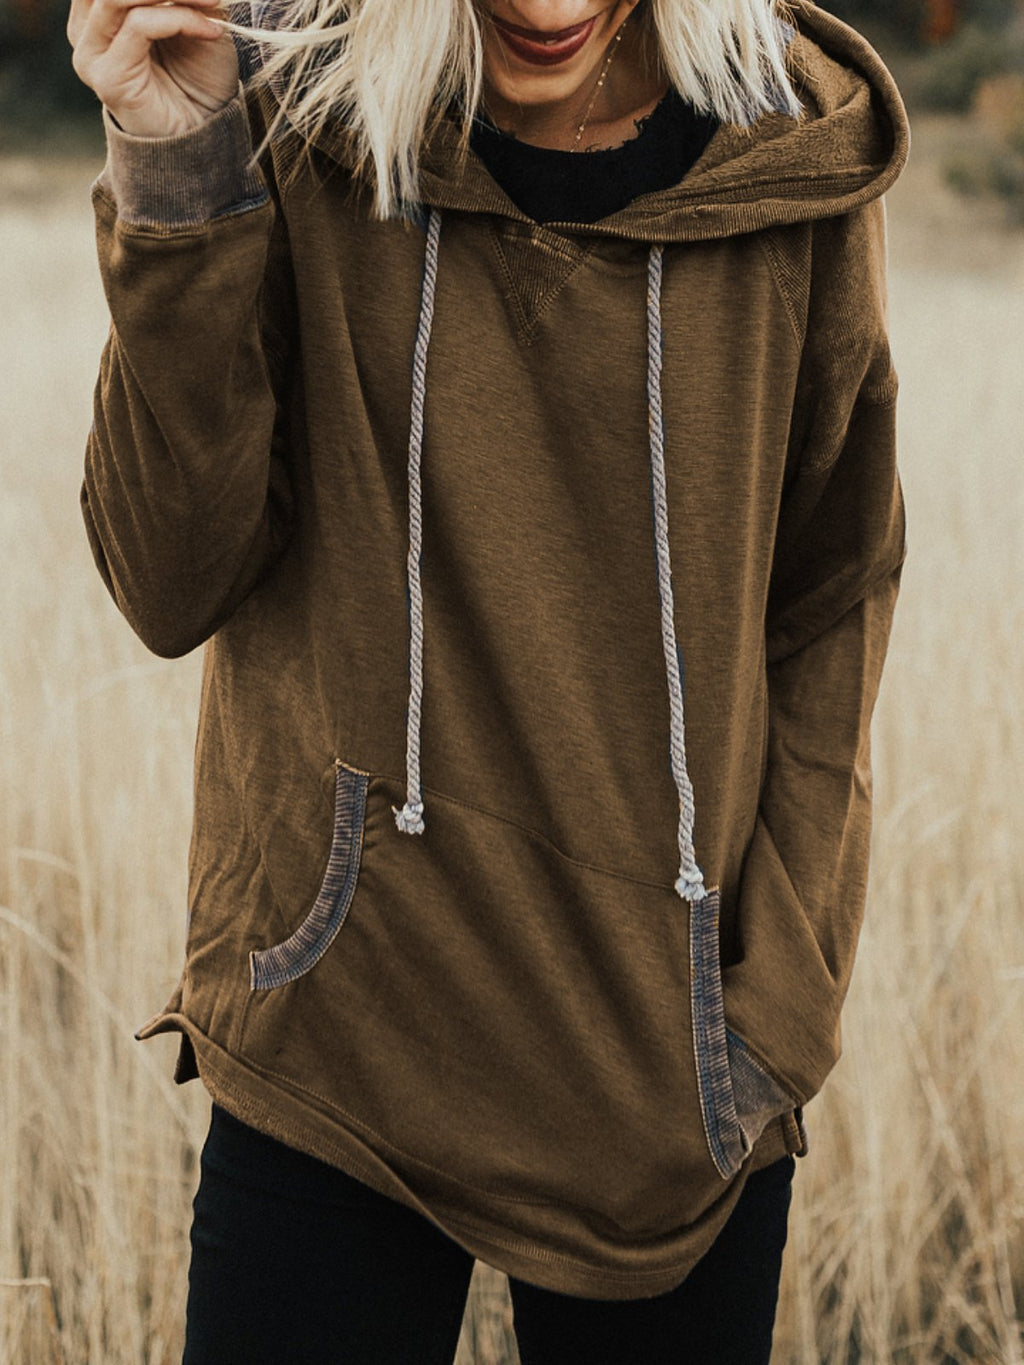 Long Sleeve Cotton-Blend Pockets Patchwork Sweatshirt&hoodies